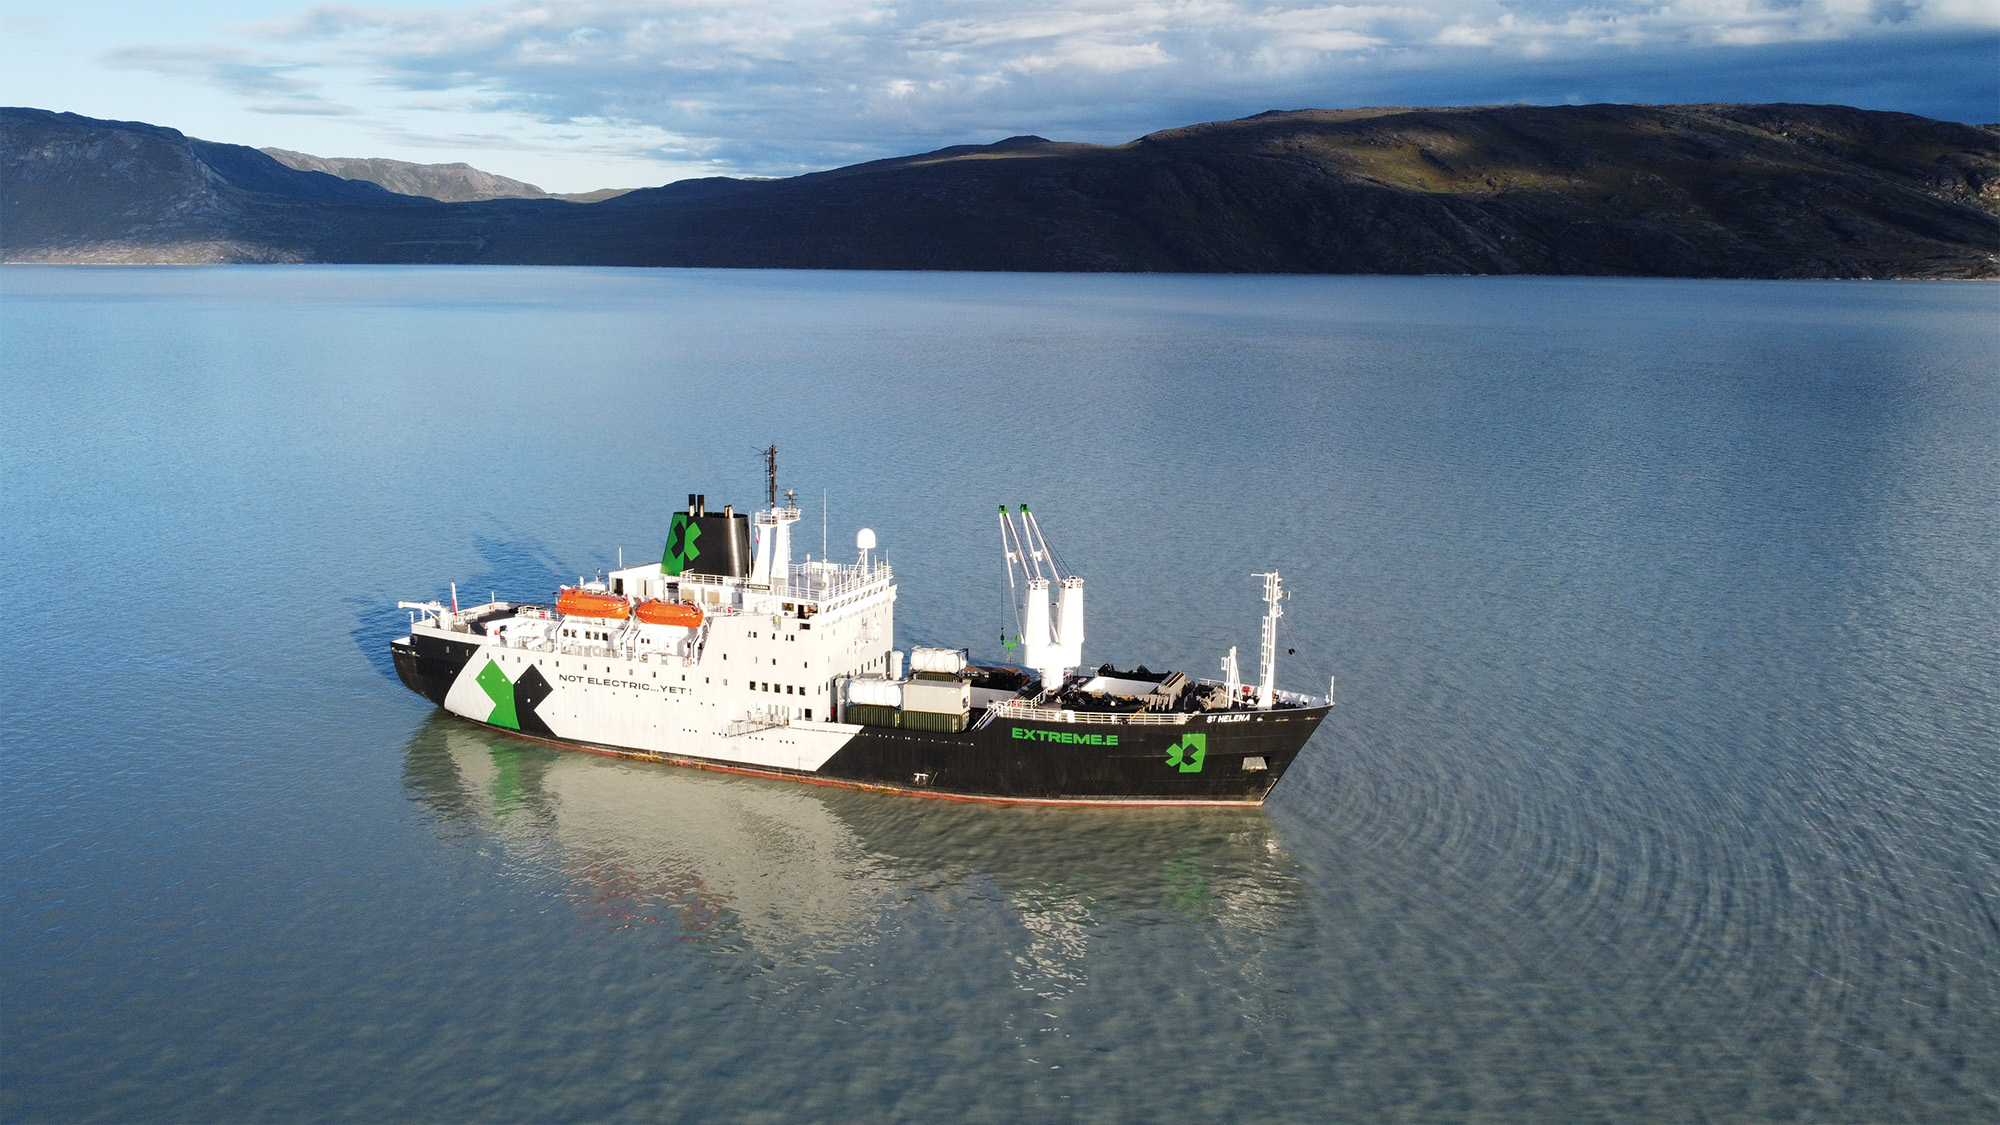 Extreme E ship St Helena in Greenland